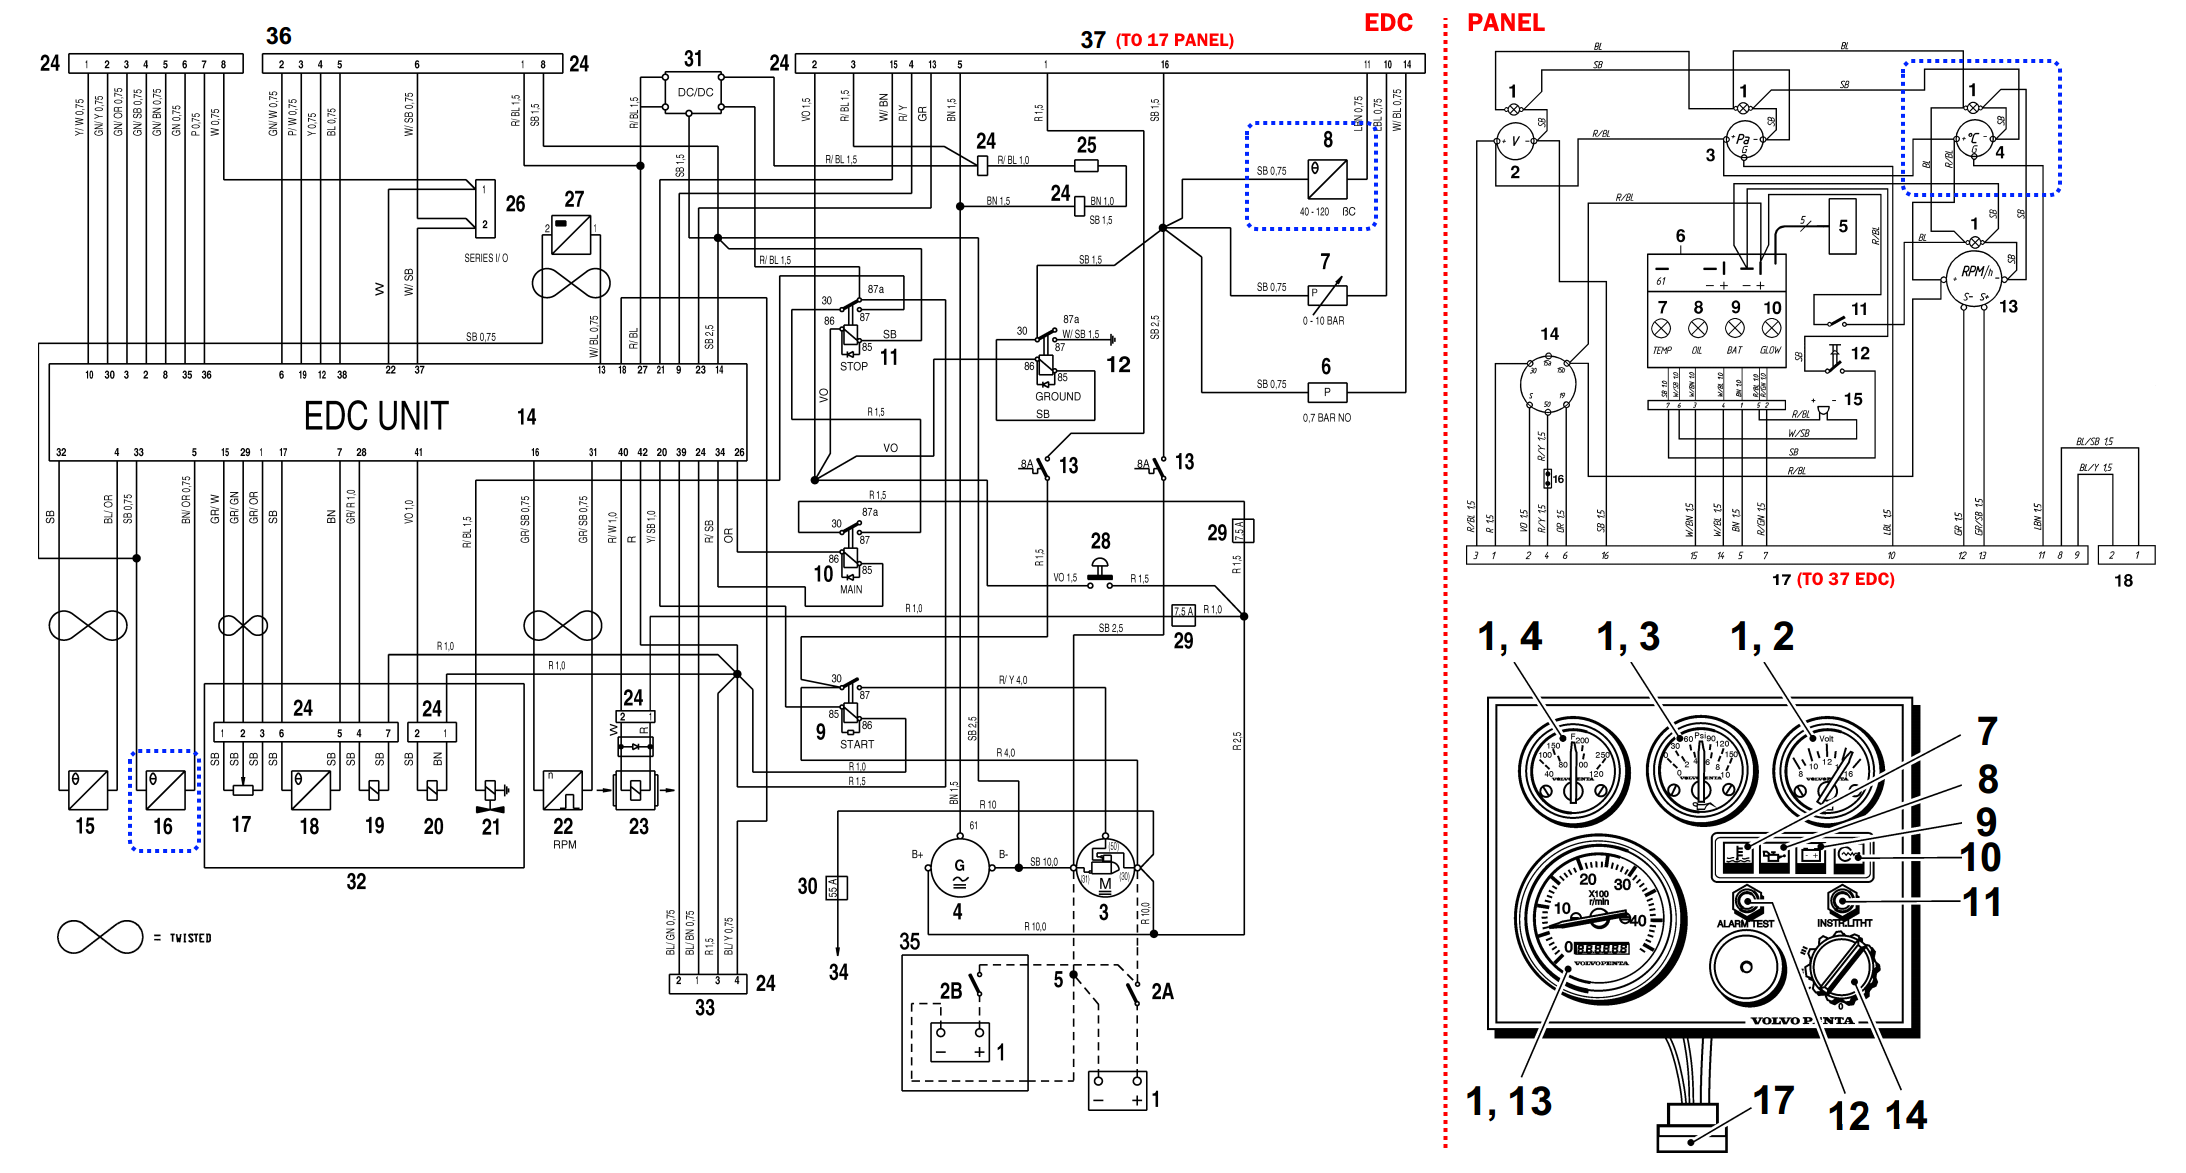 7jxdd Volvo Marine Wiring Diagram Volvo Penta 1993 Trim Gua further Starter Wiring Diagram Chevy 350 Sbc Hei Alternator Gm Solenoid in addition Post mercruiser 5 7 Diagram 411547 as well 3 5 Mercury Outboard Engine Diagram as well 3 5 Mercury Outboard Engine Diagram. on volvo penta alternator wiring diagram